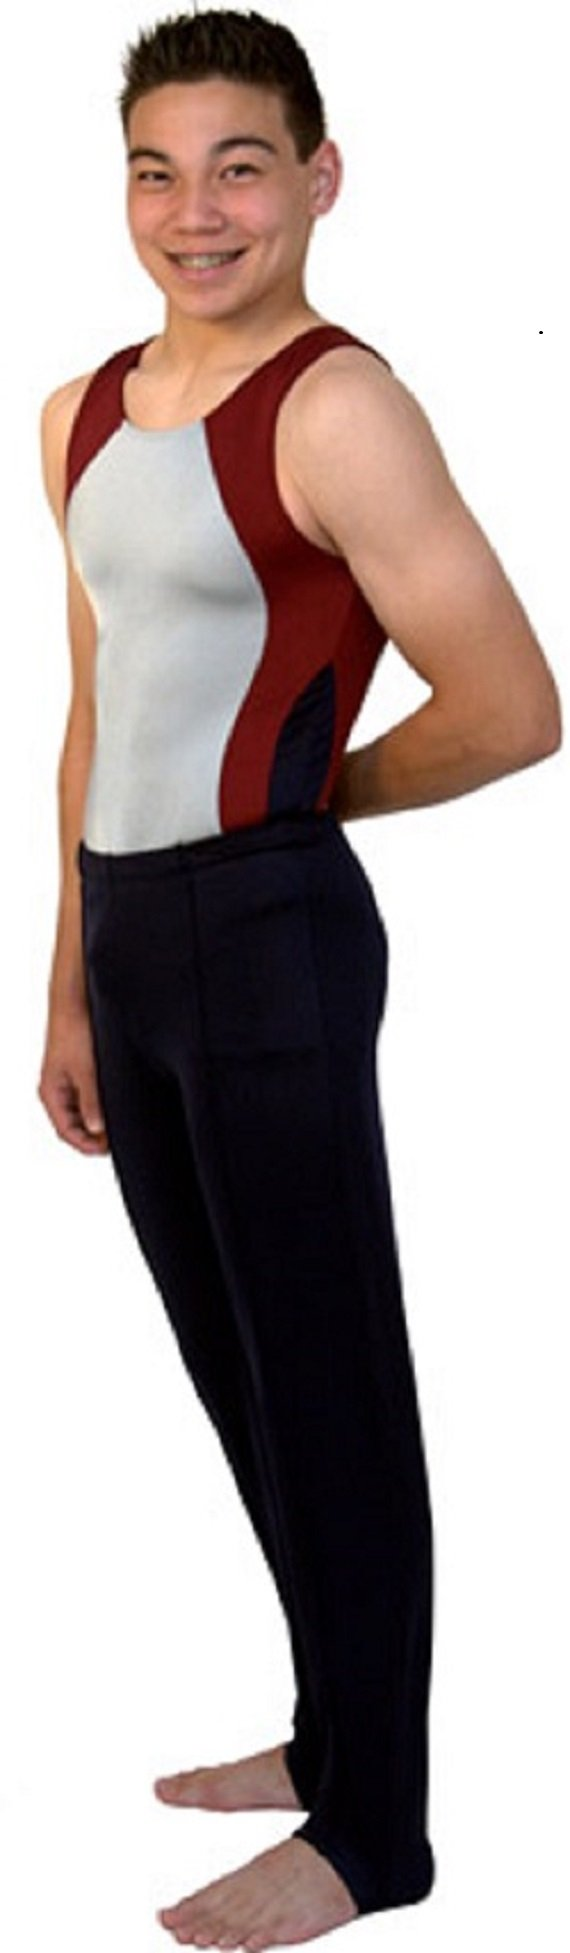 Snowflake Designs Navy Blue Boys and Mens Gymnastics Stirrup Pants(Child Small) by Snowflake Designs